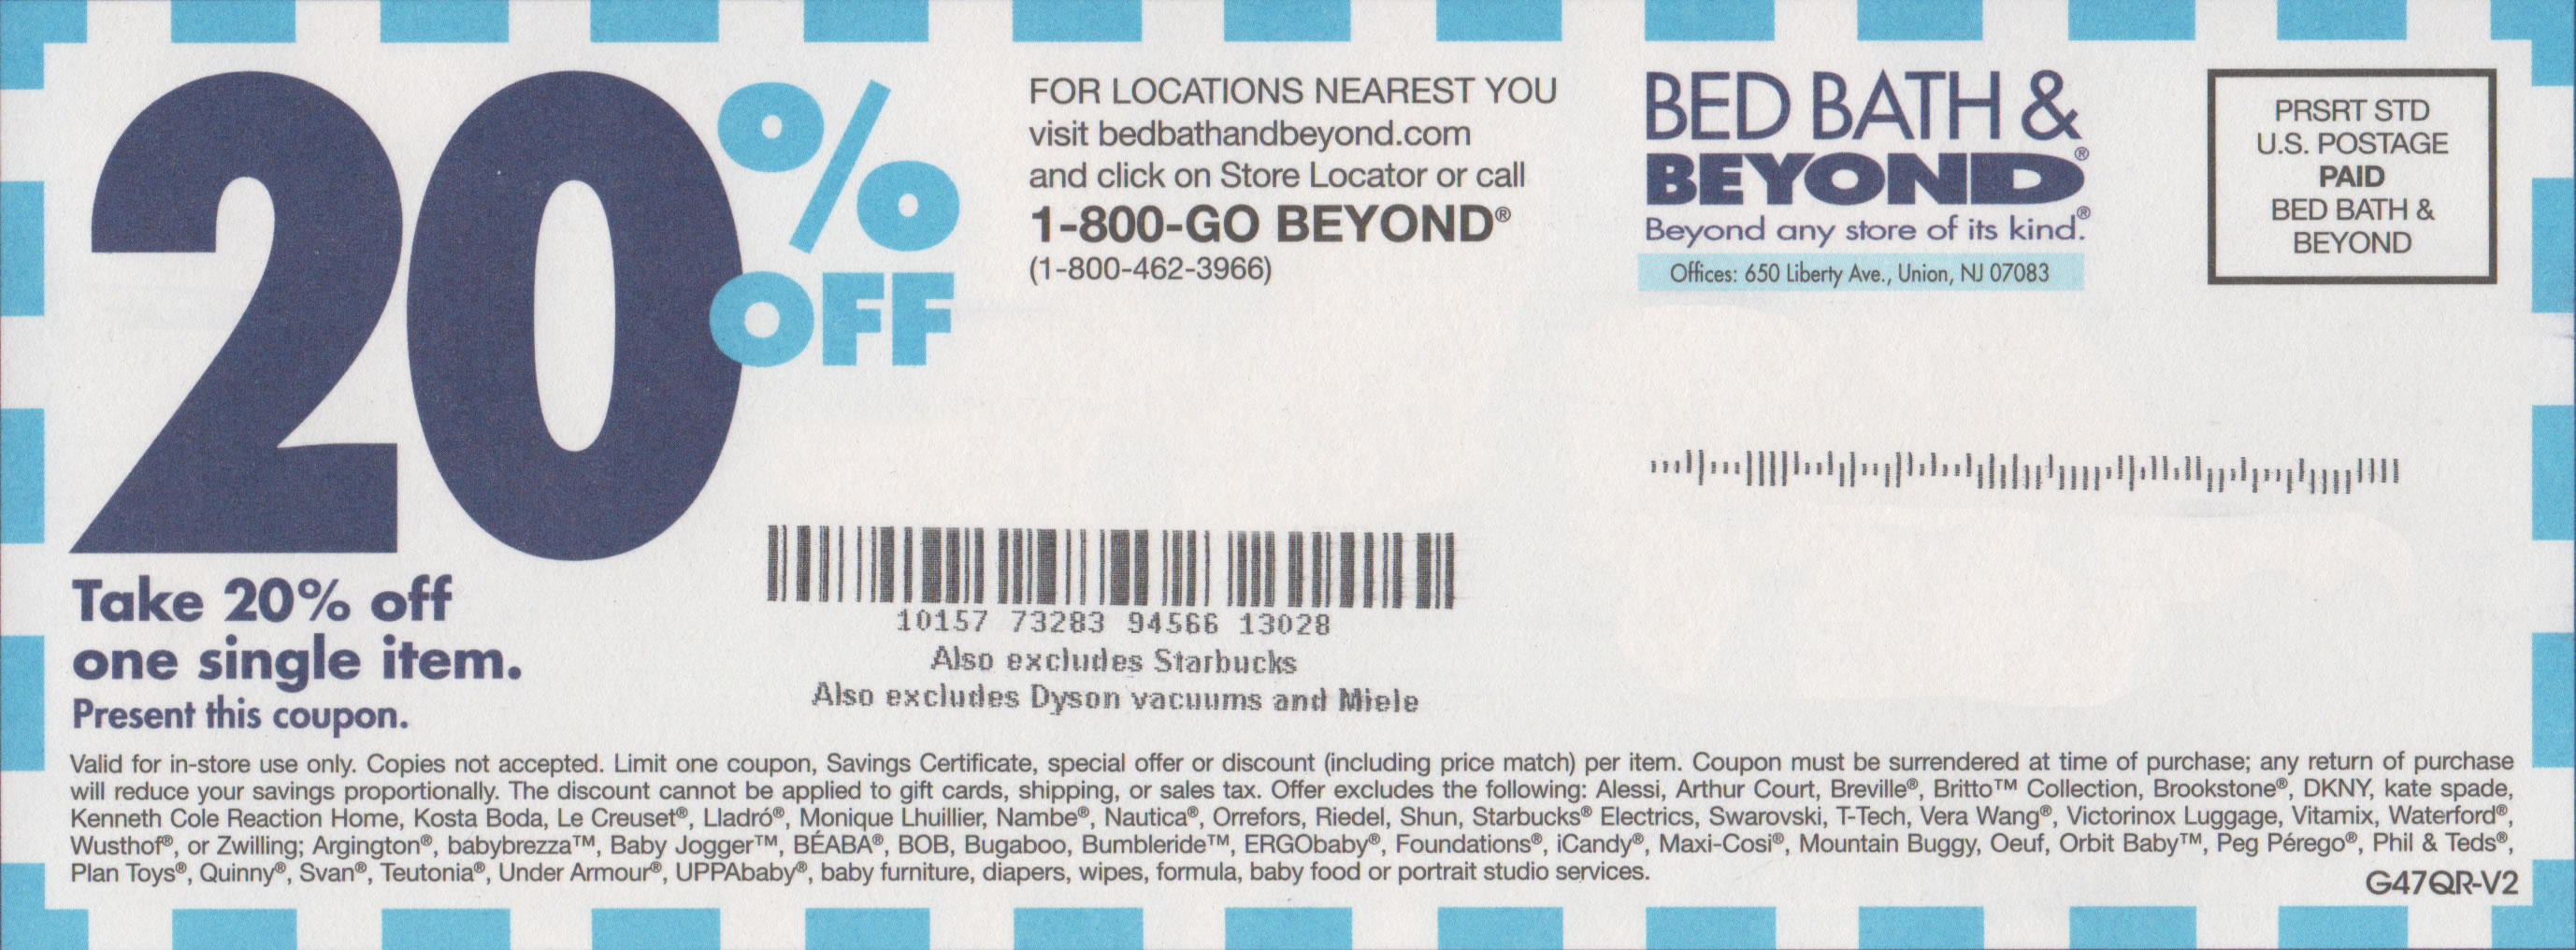 bed bath and beyond 20 off coupon which bed bath and beyond bed bath and beyond 13554